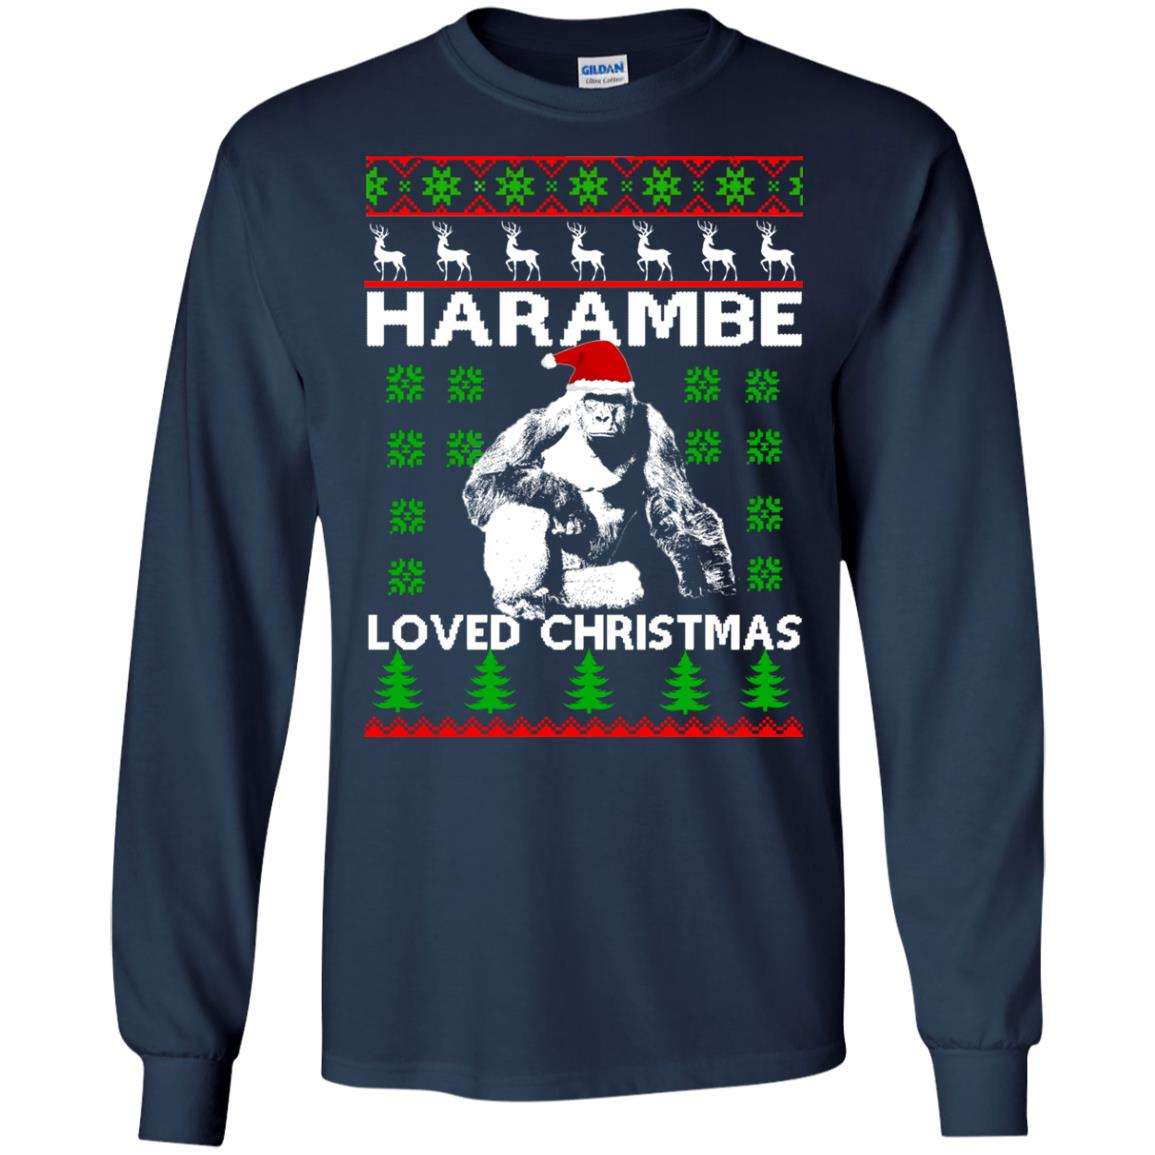 image 809 - Harambe Loved Christmas Sweater, Shirt, Hoodie